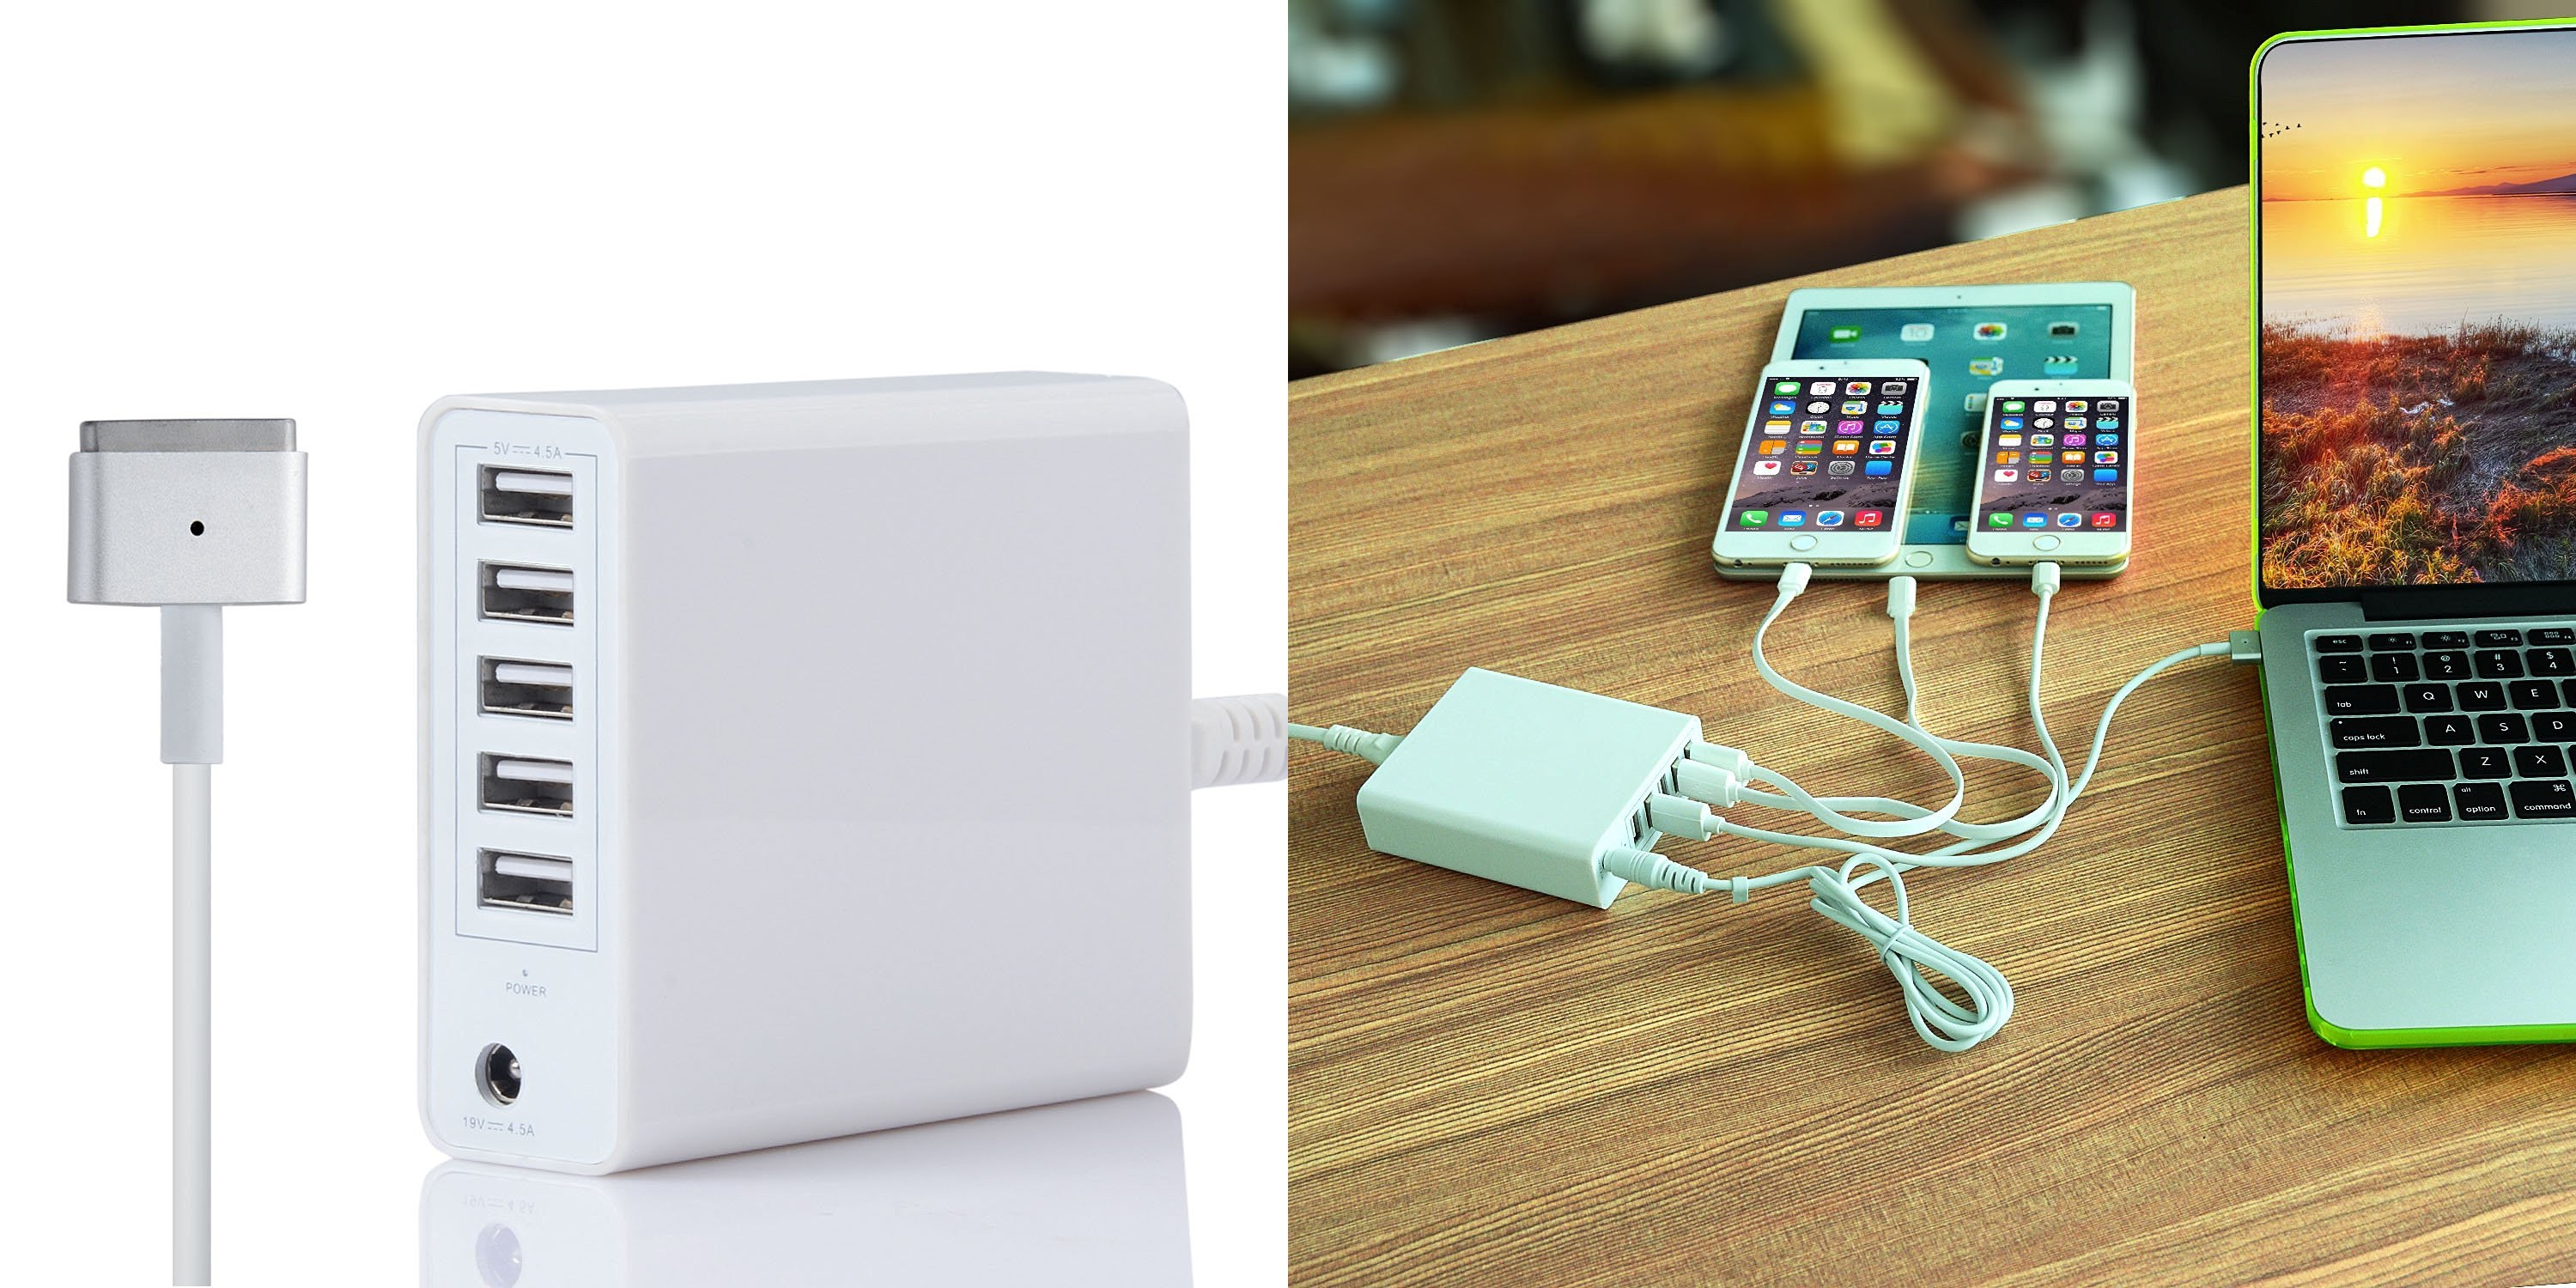 macbook-usb-magsafe-charger